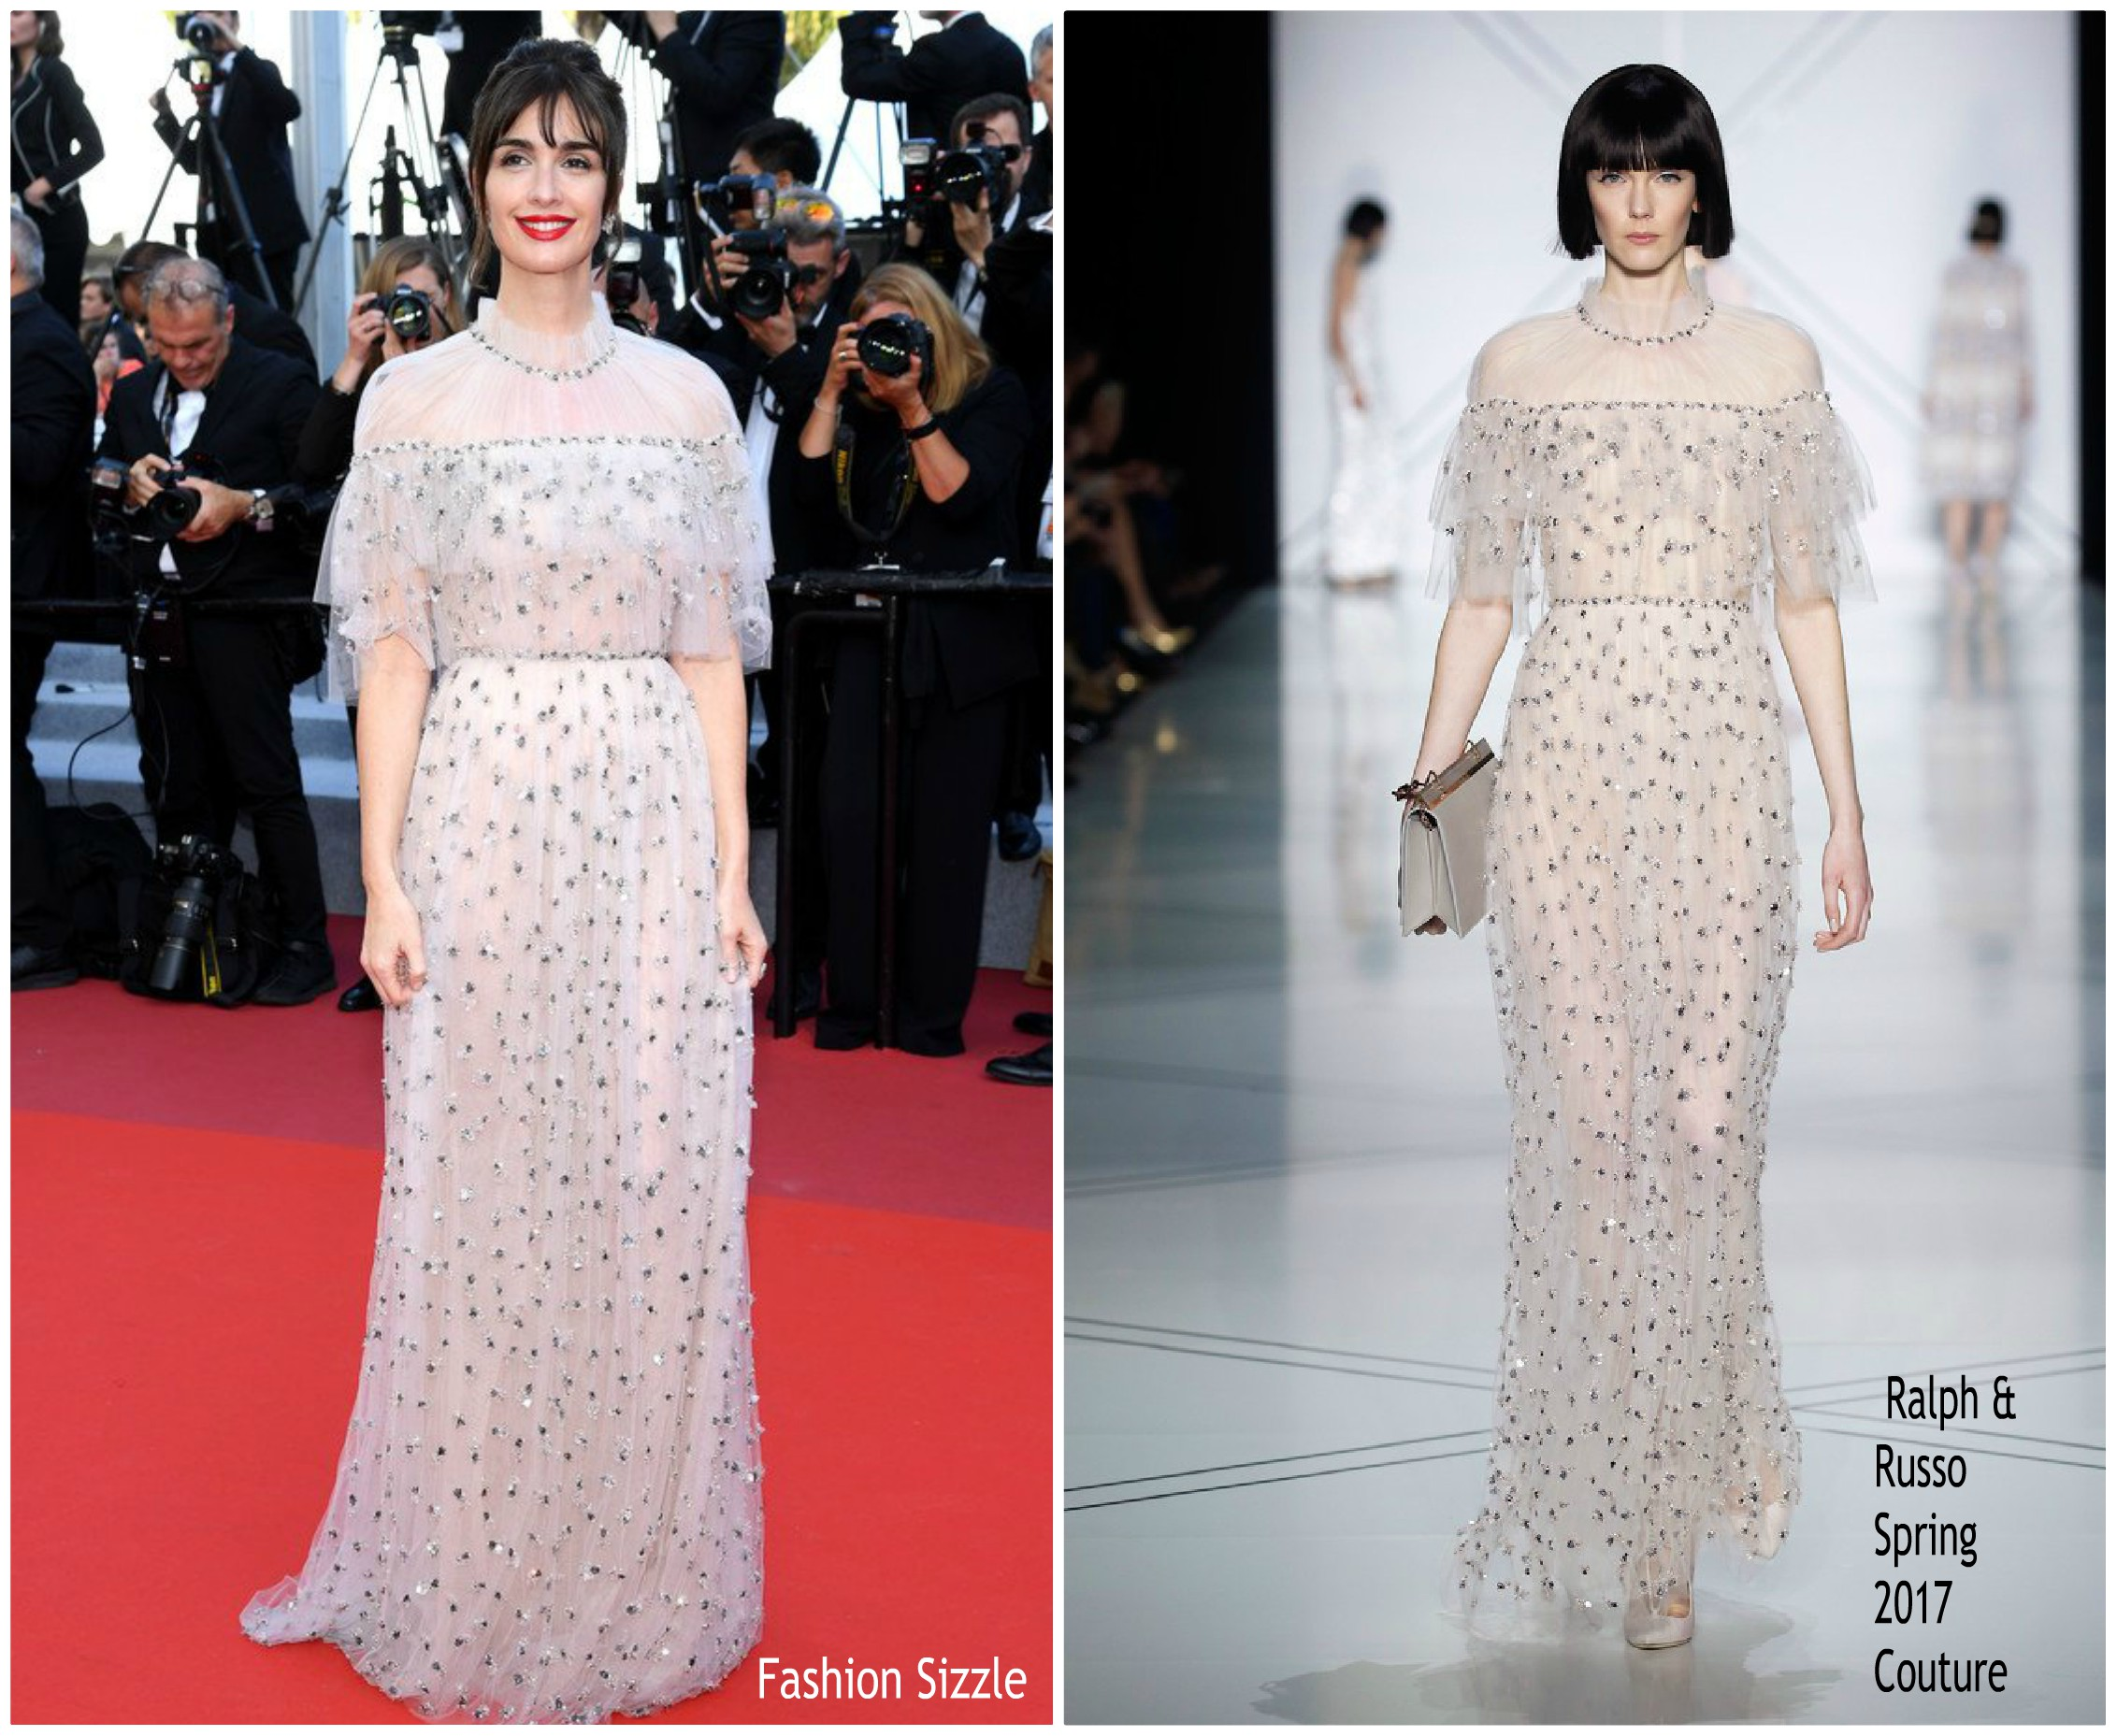 paz-vega-in-ralph-russo-couture-2019-cannes-film-festival-closing-ceremony